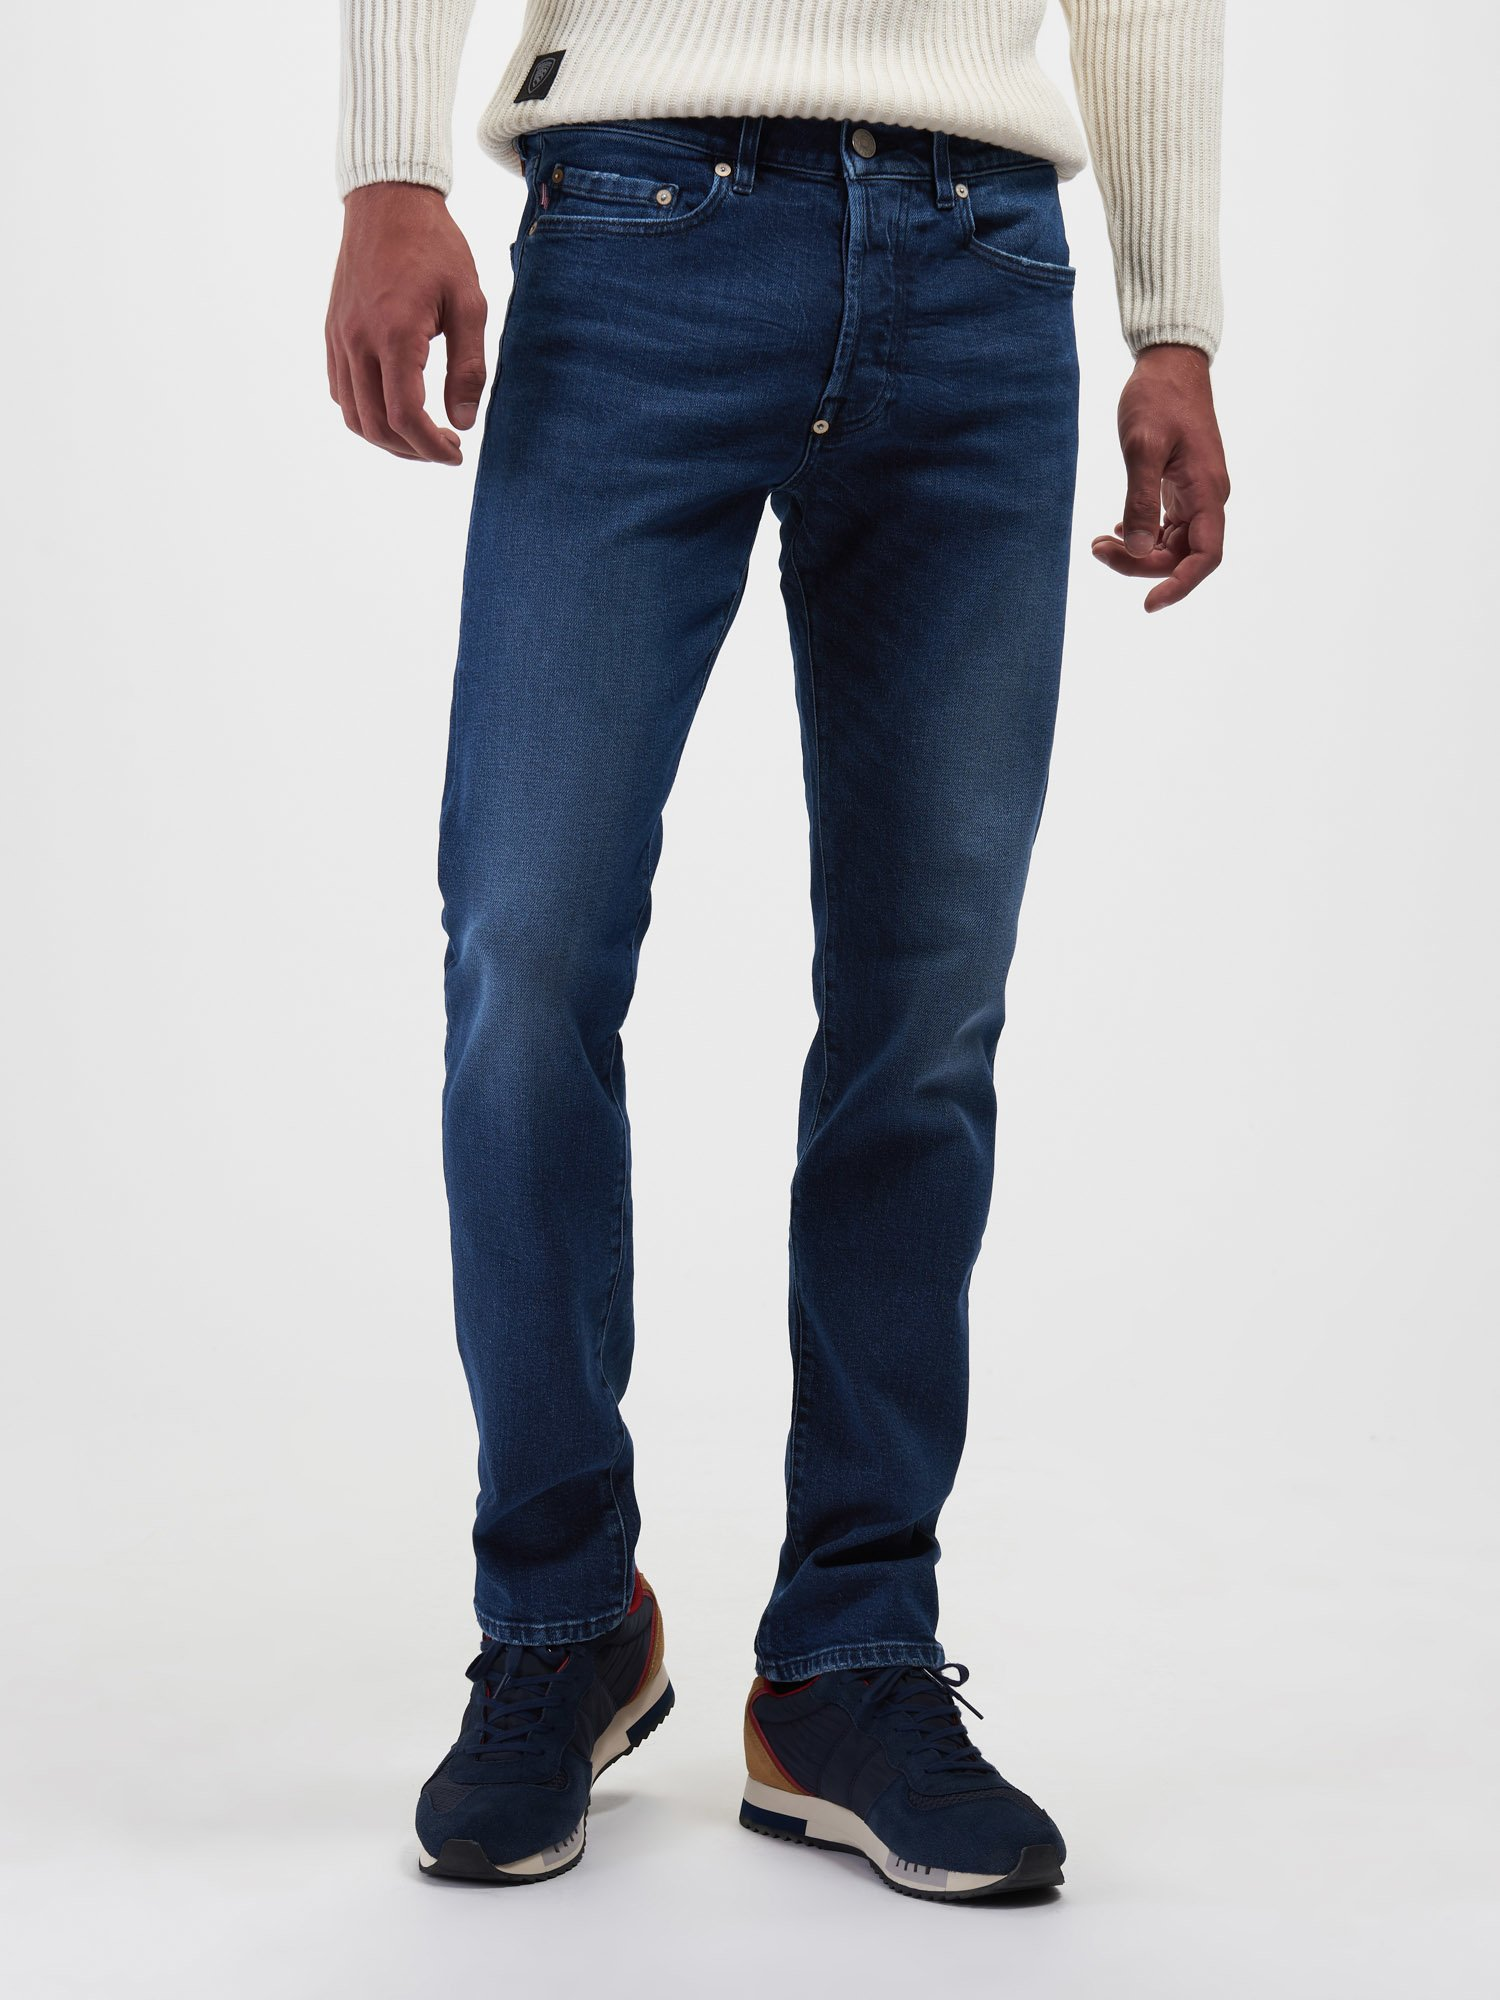 DARK BLUE STONE WASH JEANS - Blauer